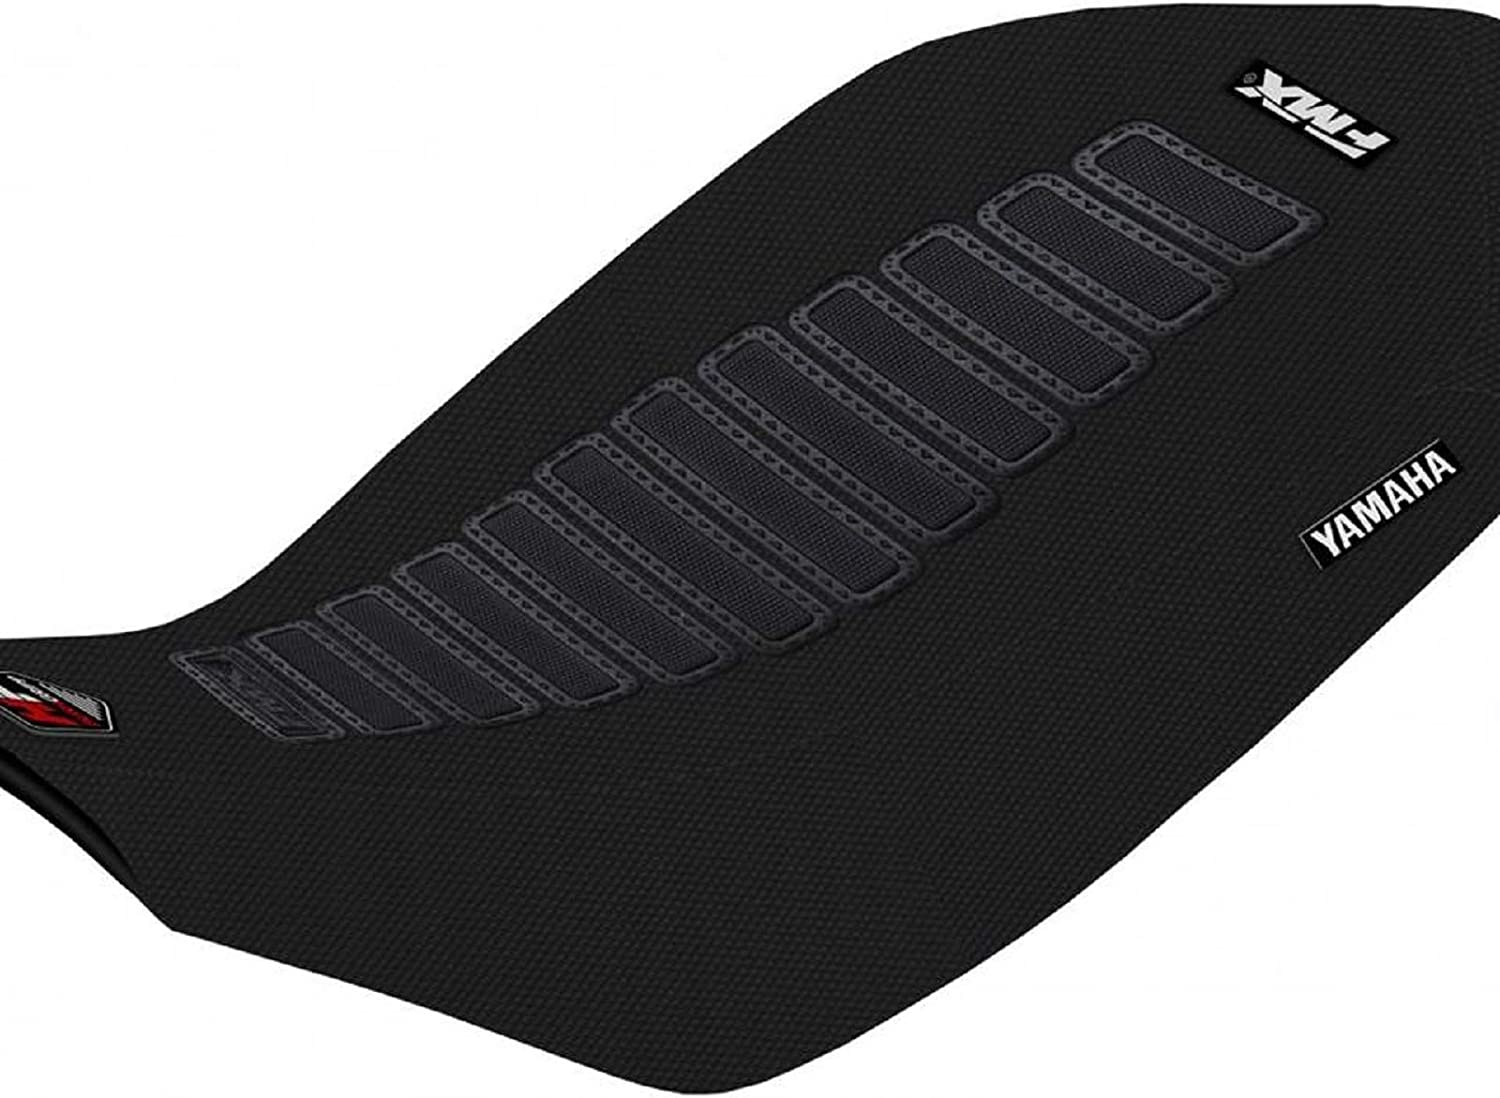 SEAT COVER ULTRA GRIP For YAMAHA yfm700 RAPTOR700  EXCELLENT QUALITY